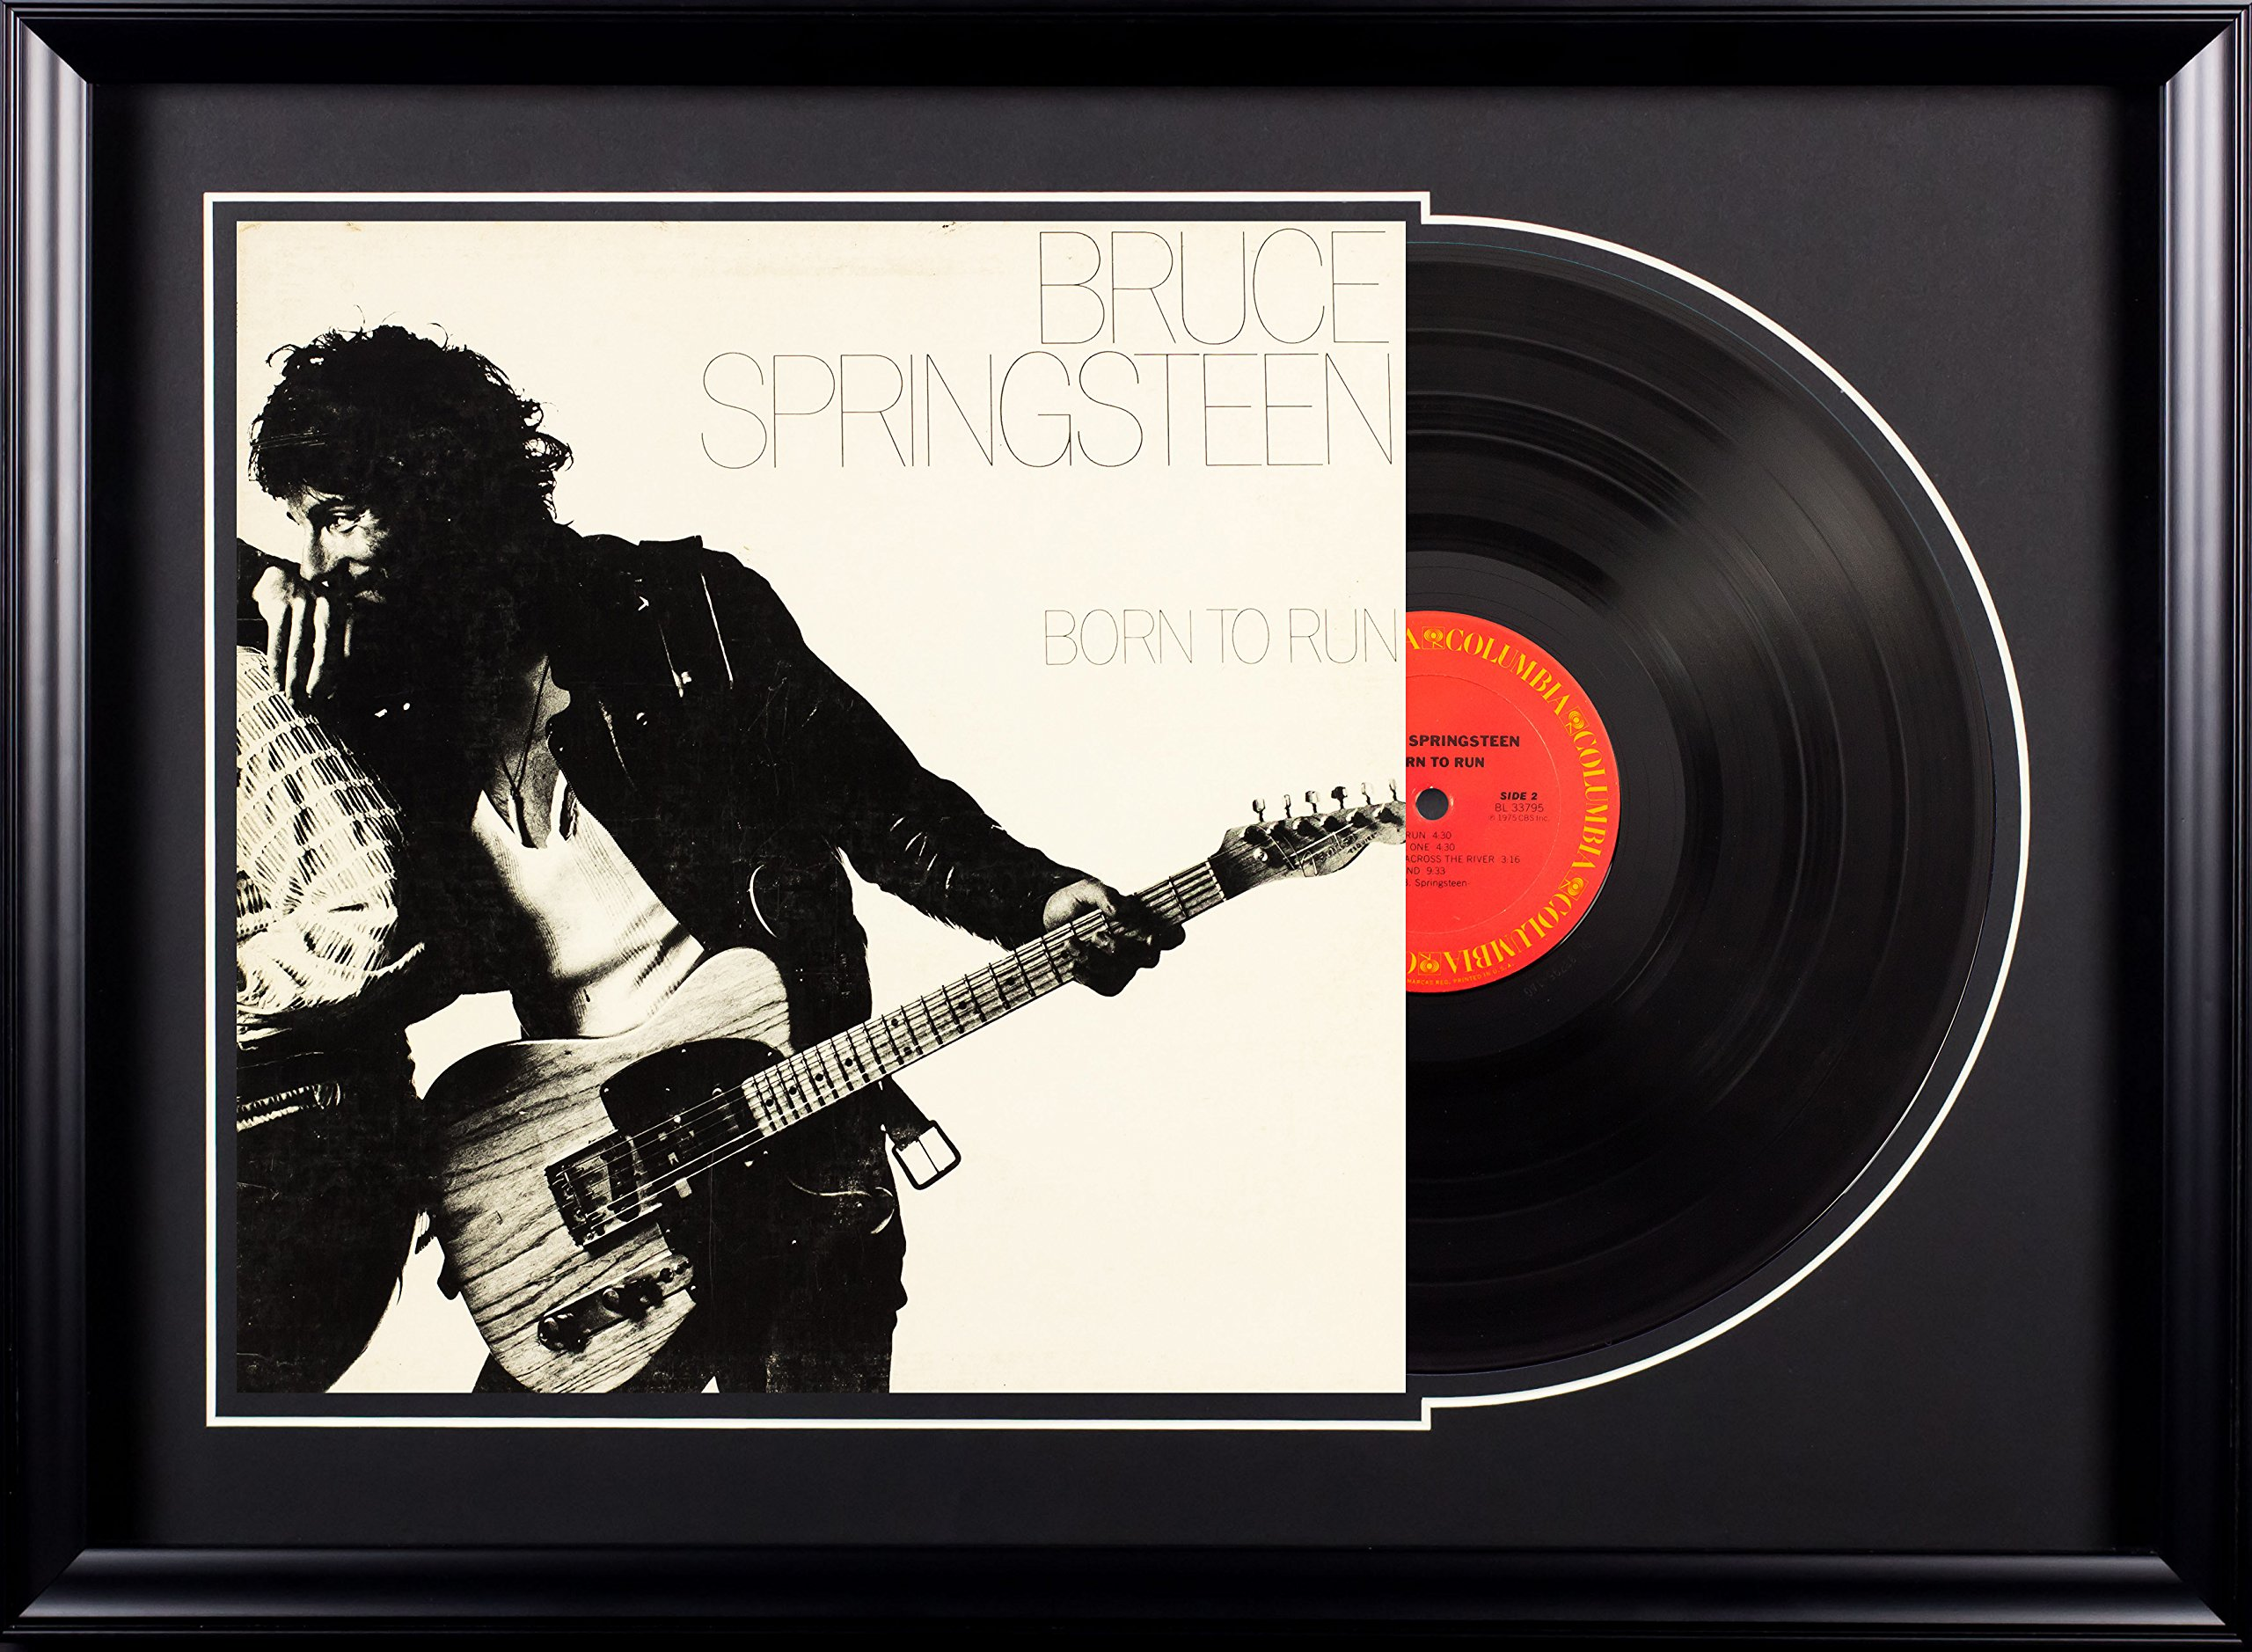 Vintage Favs Bruce Springsteen Born to Run Deluxe Framed Vintage Vinyl Album by Vintage Favs